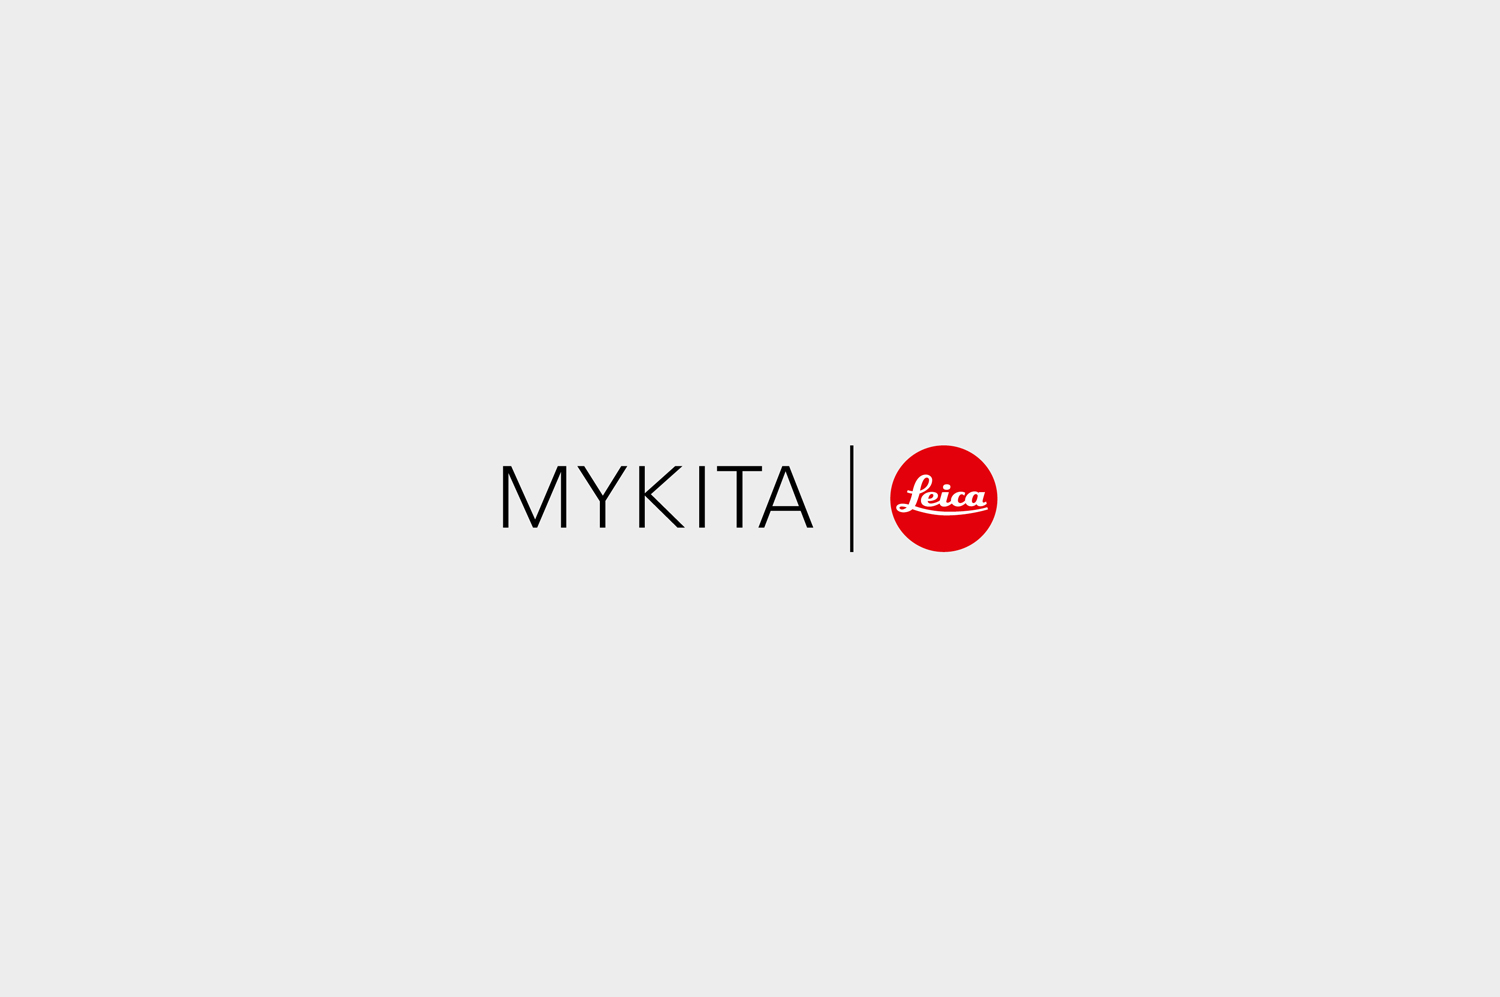 MYKITA_Leica_OPTICAL_Logo_Landscape